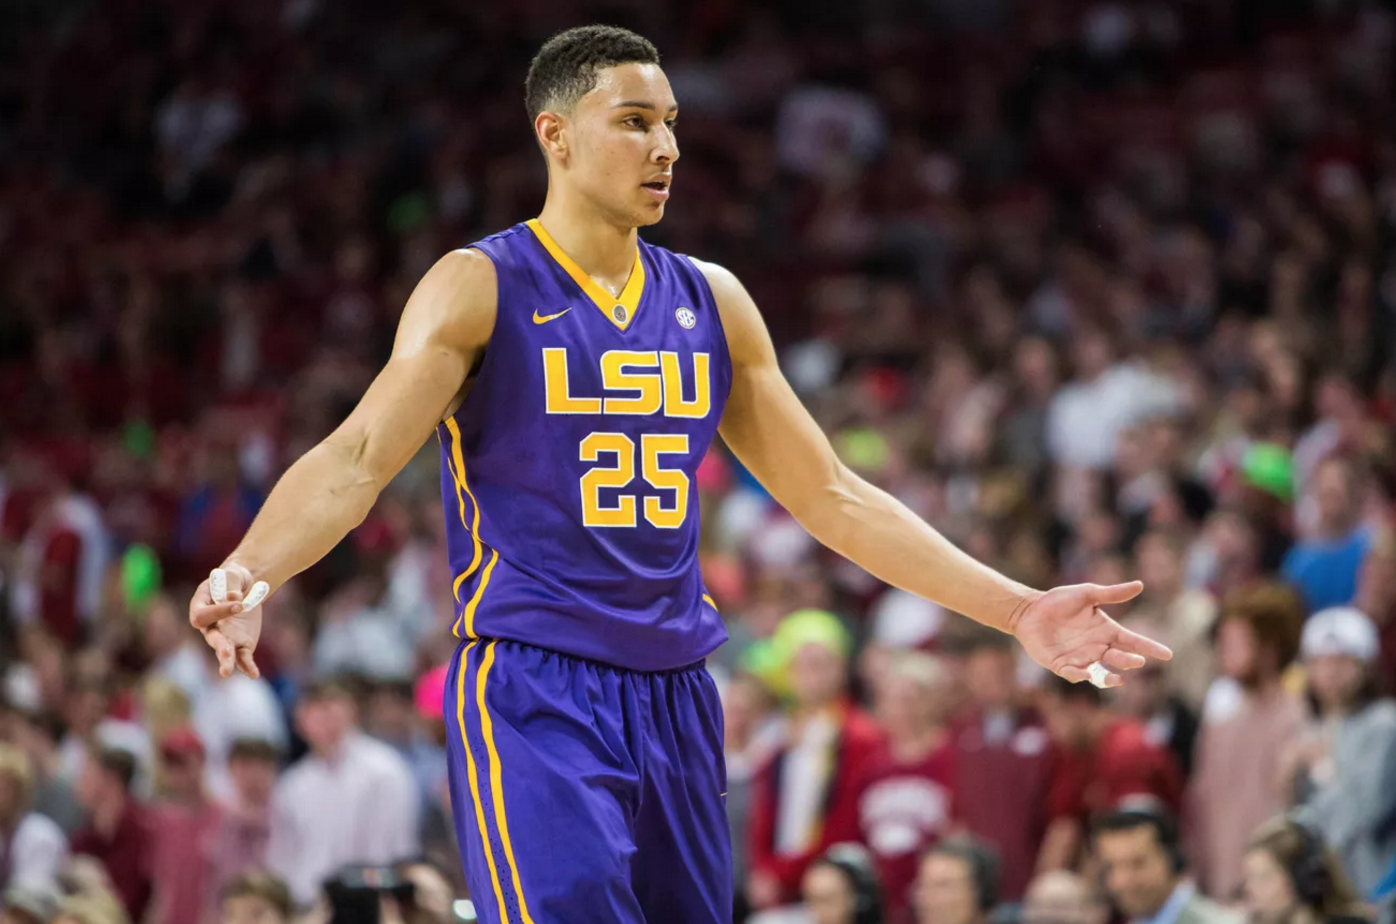 Arkansas routs LSU 85-65; most likely ending Tigers' NCAA hopes.